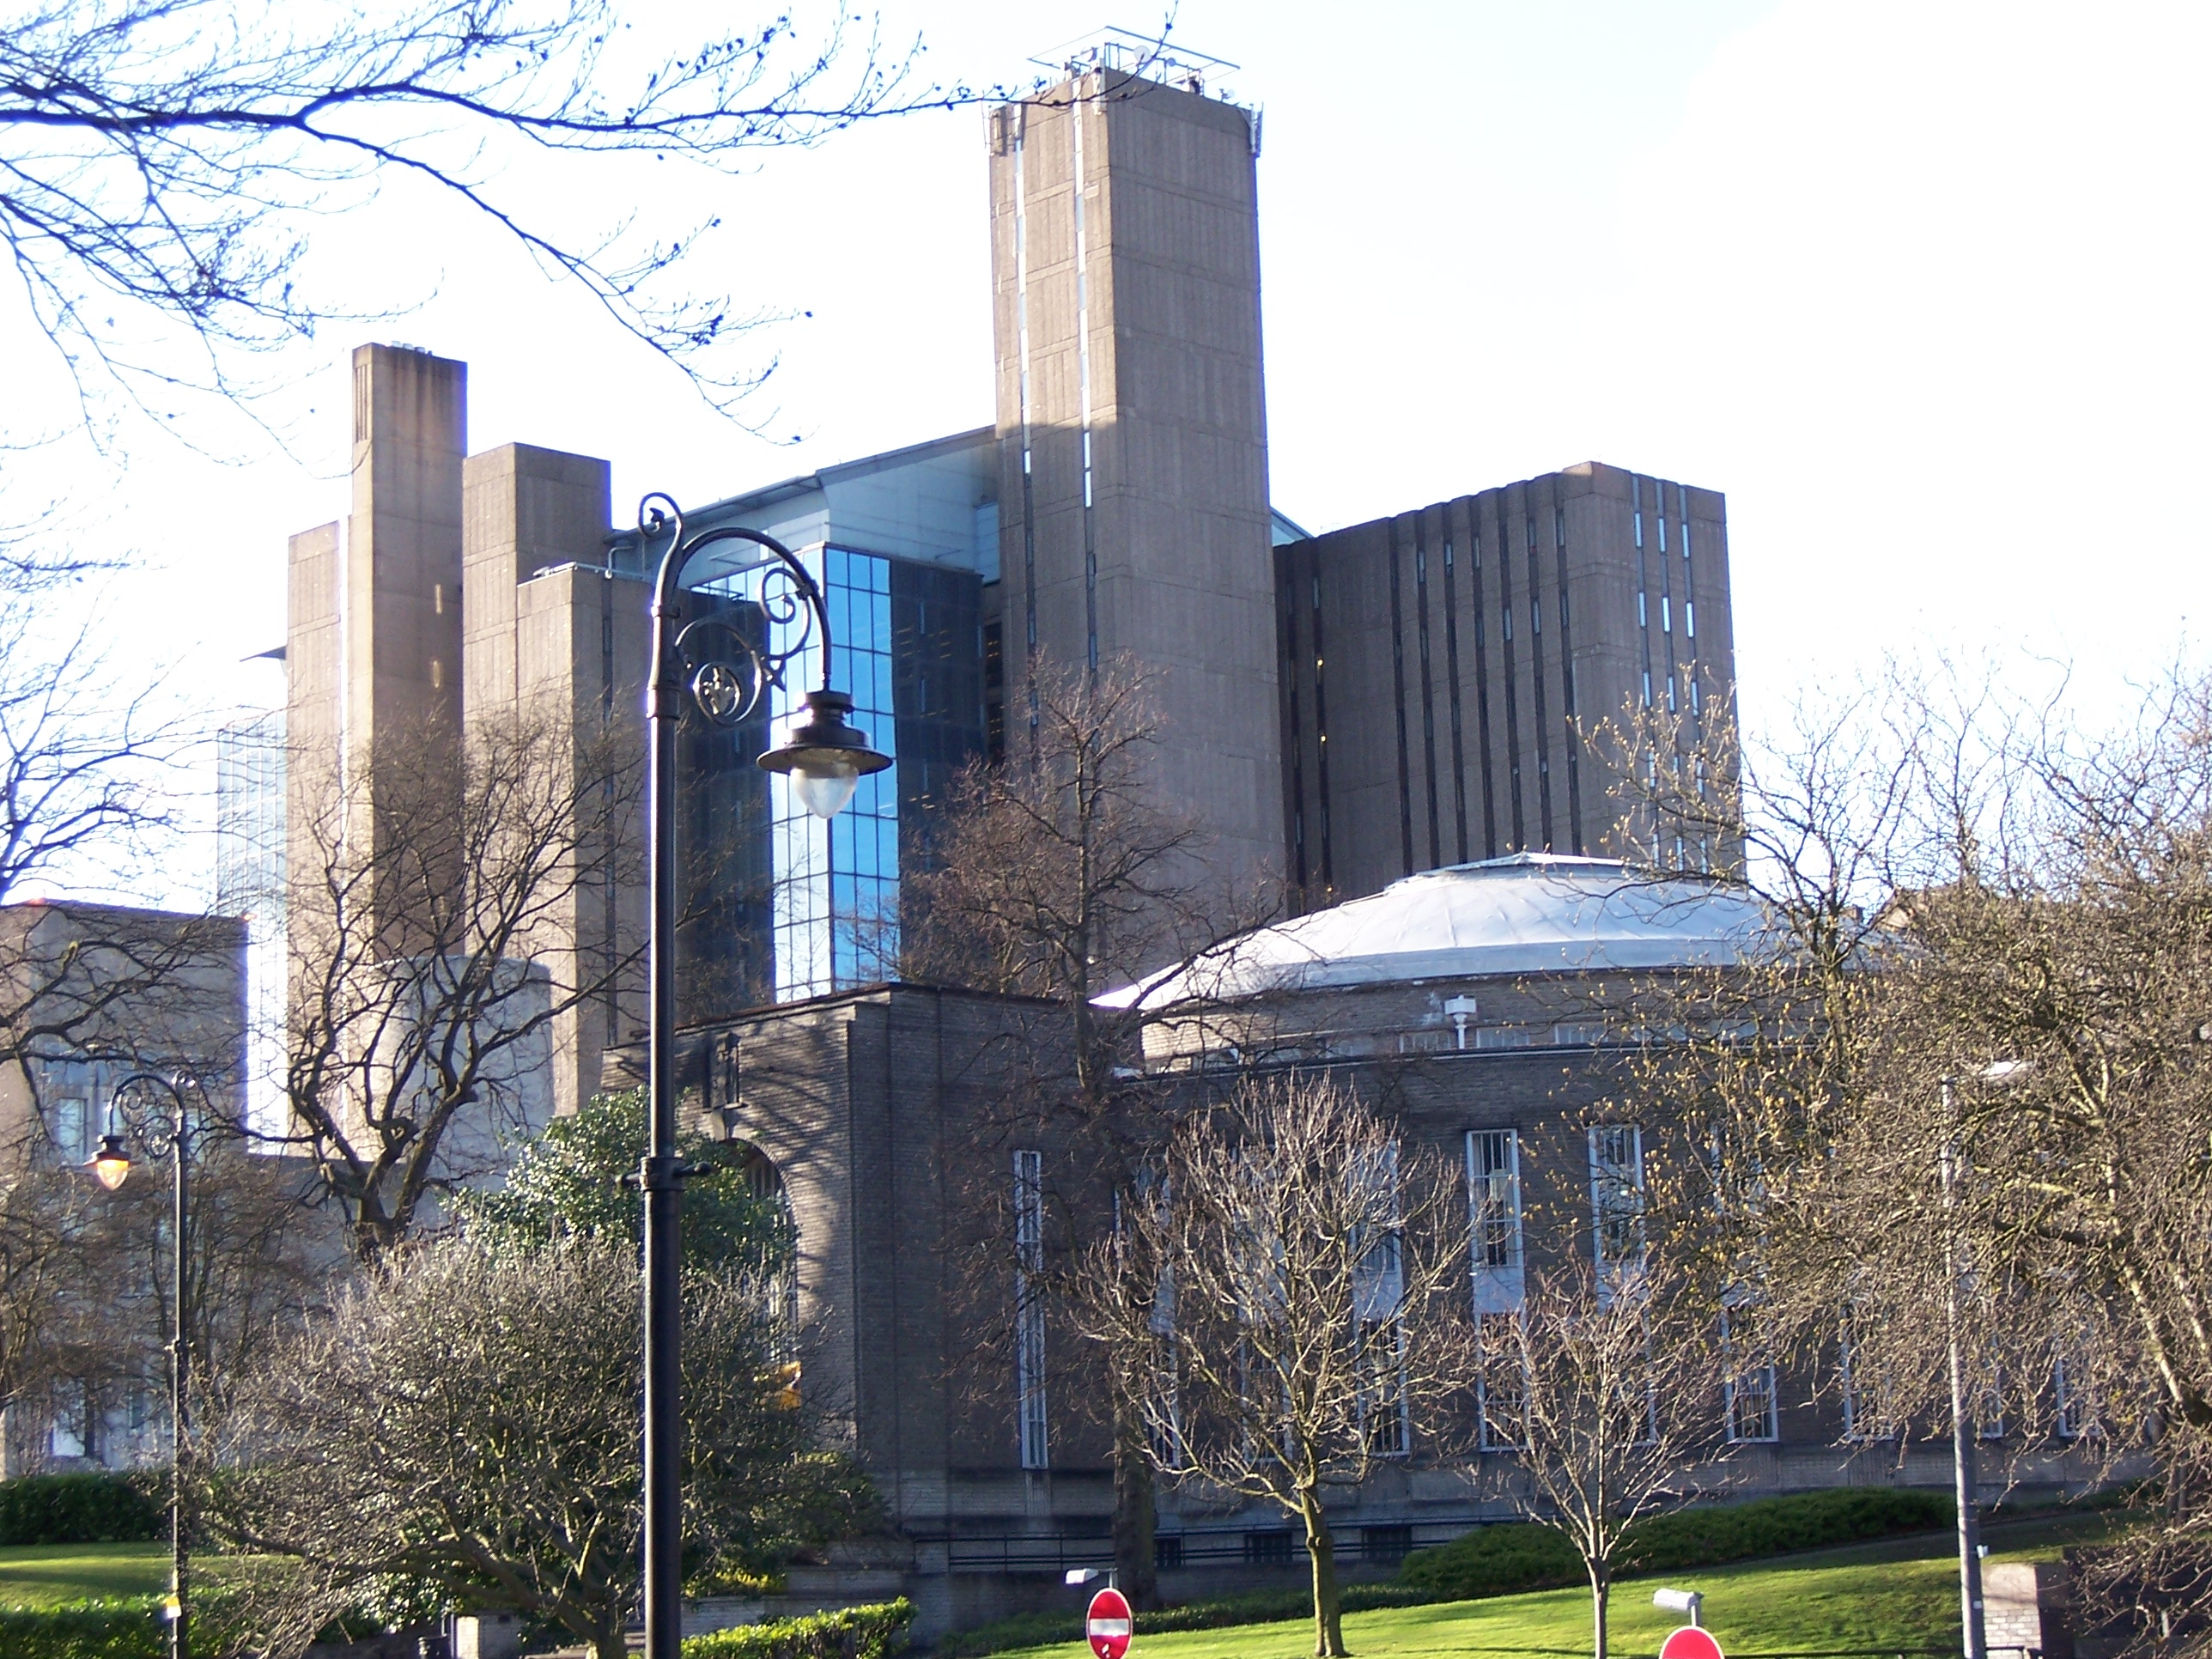 Biochemistry glasgoe university